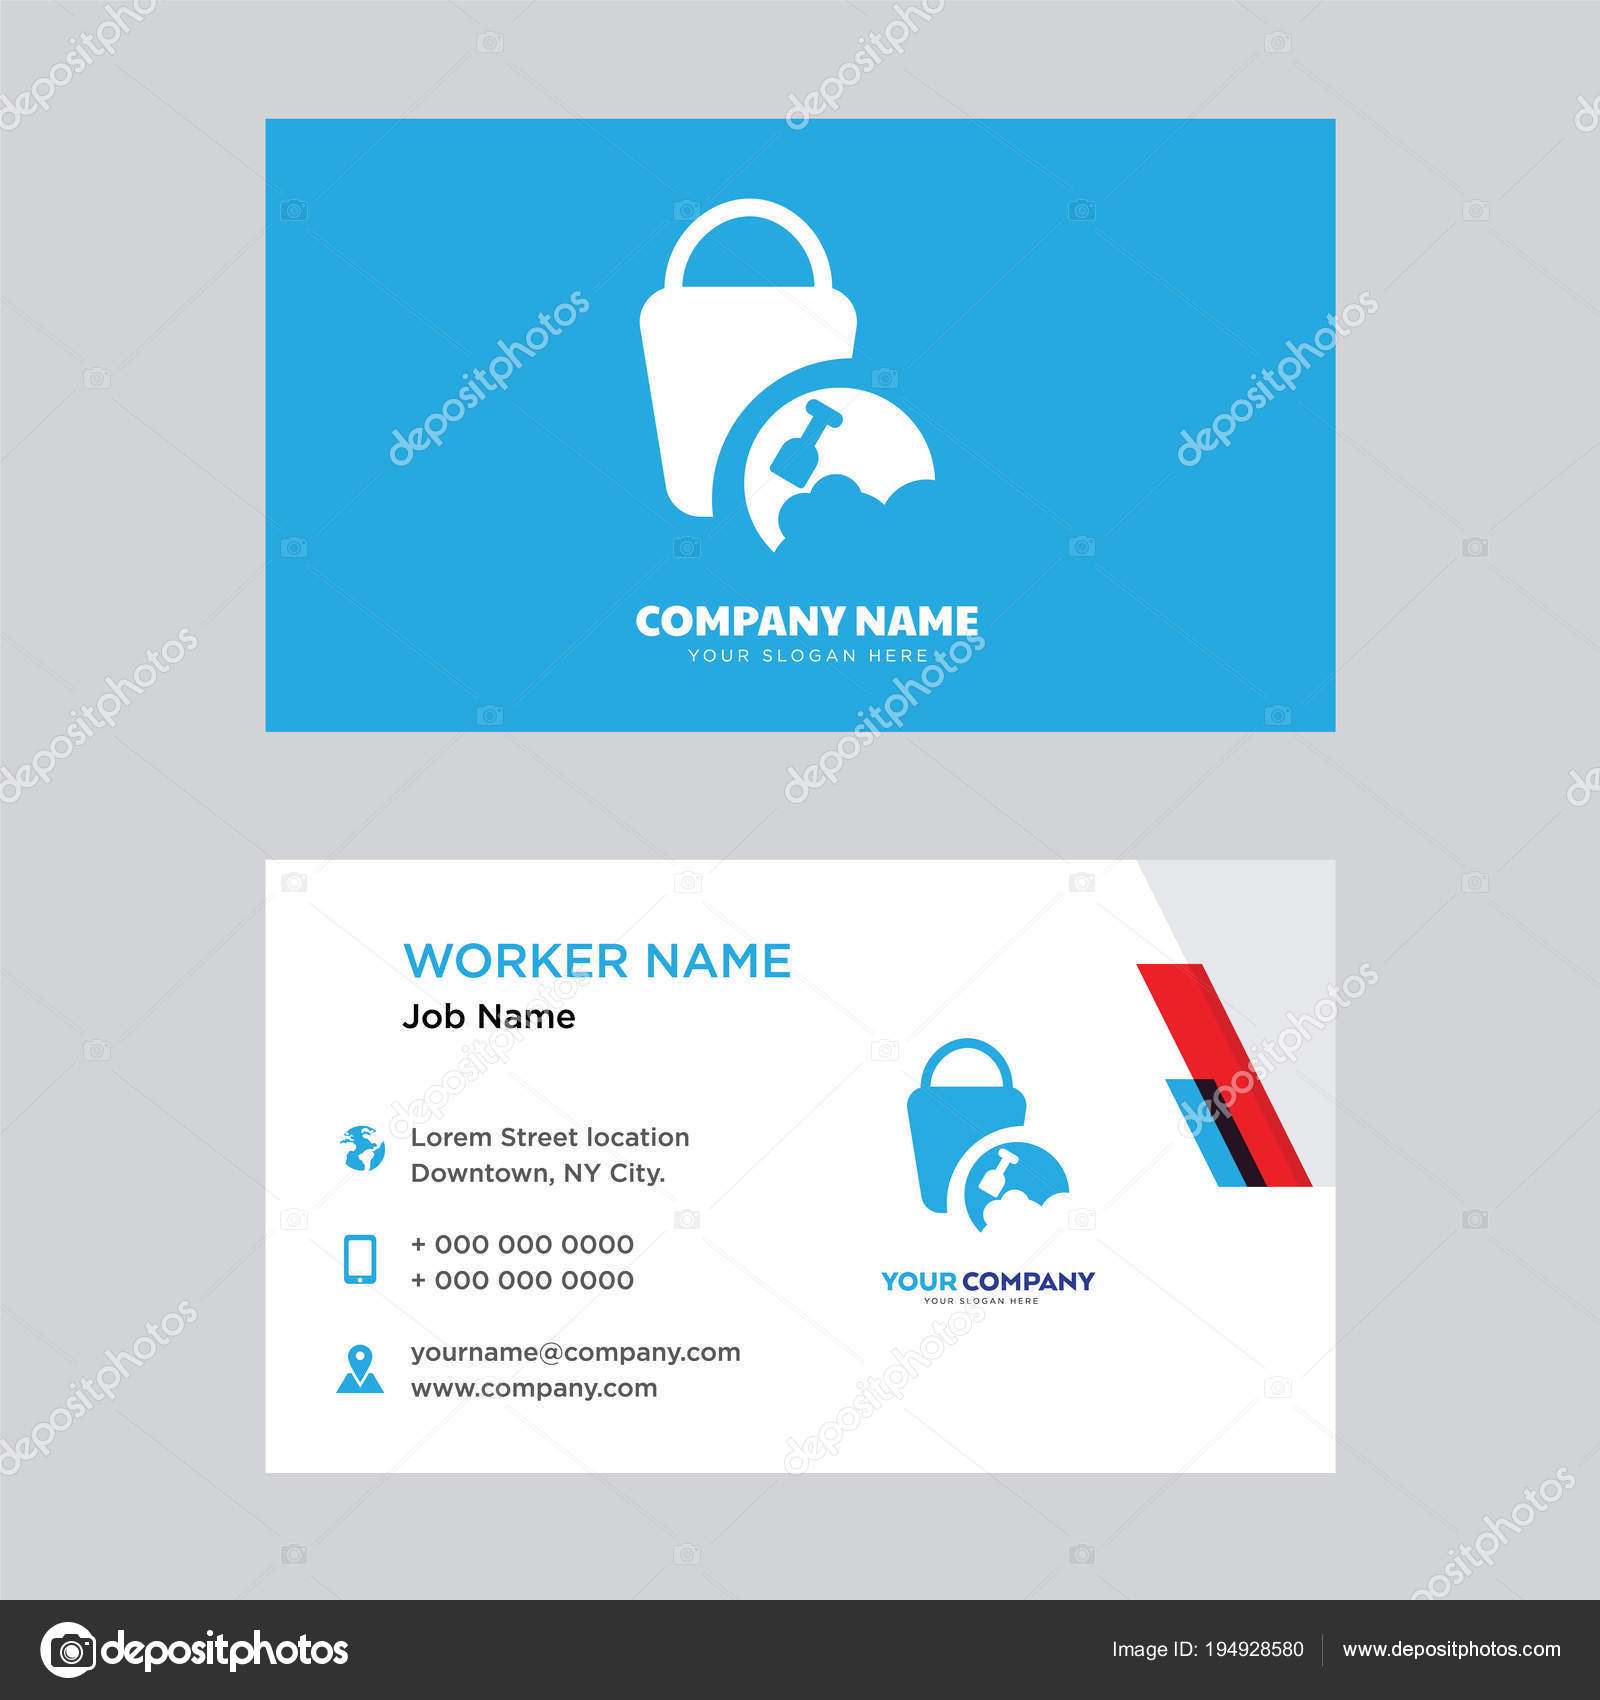 Sand Bucket Business Card Design Template Visiting For Your Company Modern Horizontal Identity Vector By Best